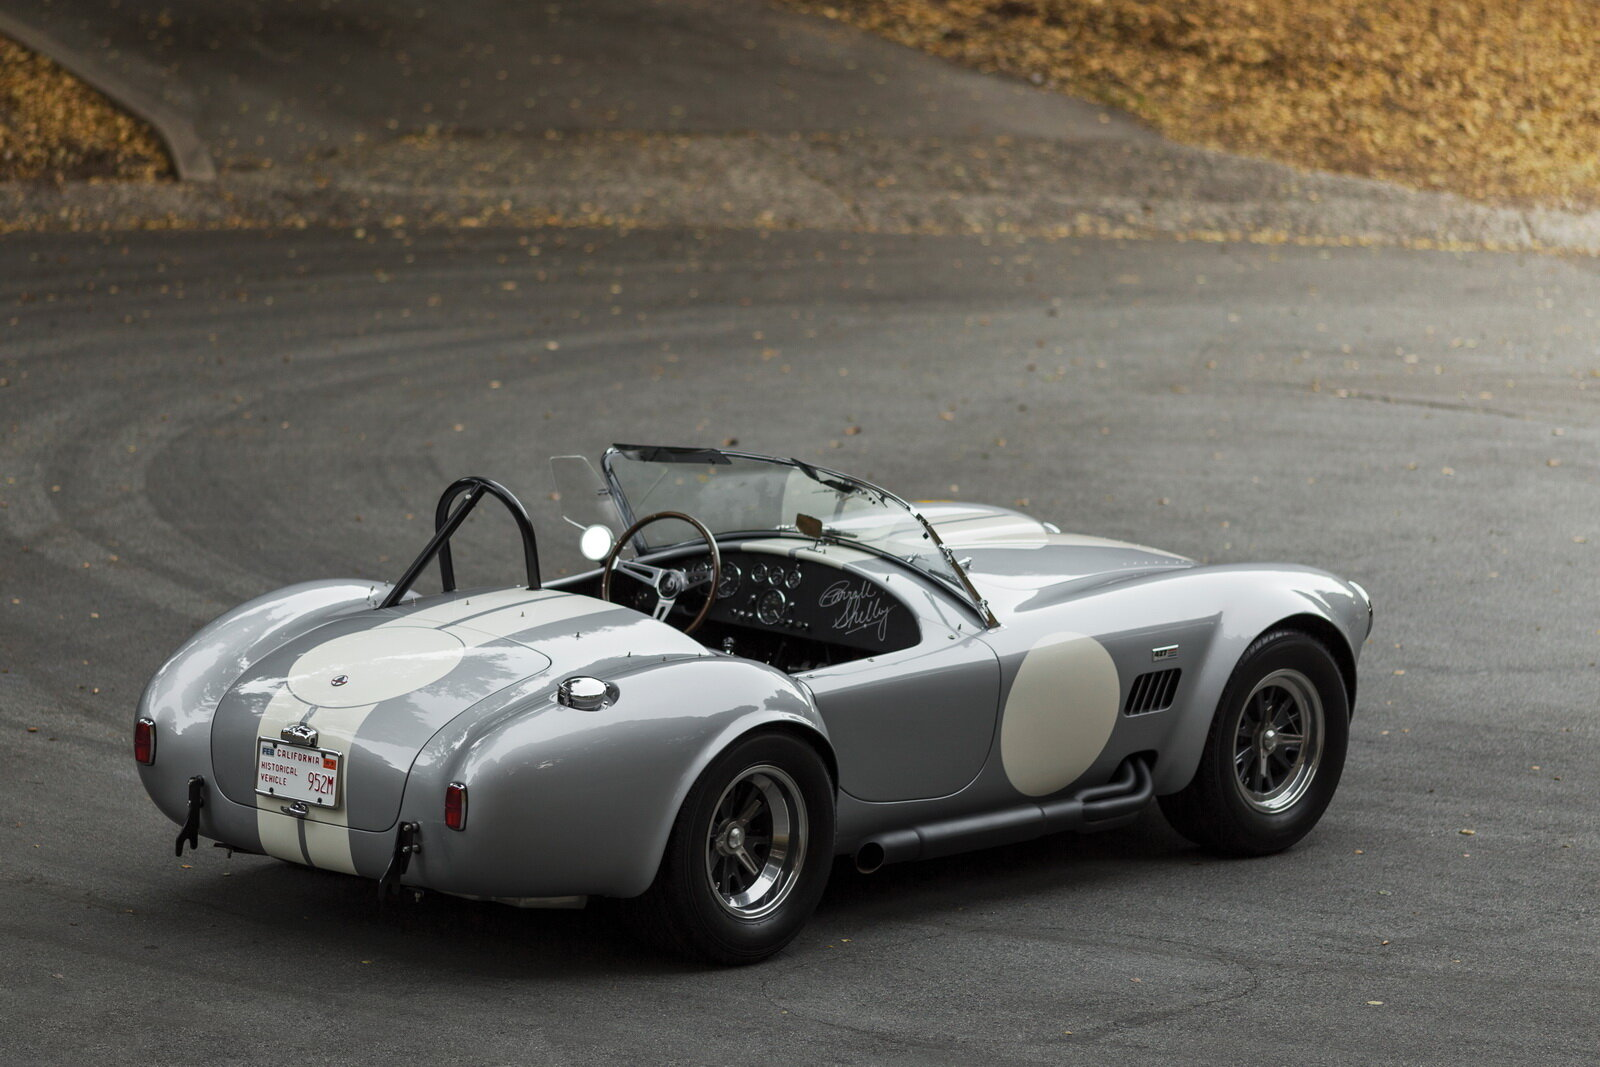 shelby-cobra-427-is-up-for-sale_100638125_h.jpg